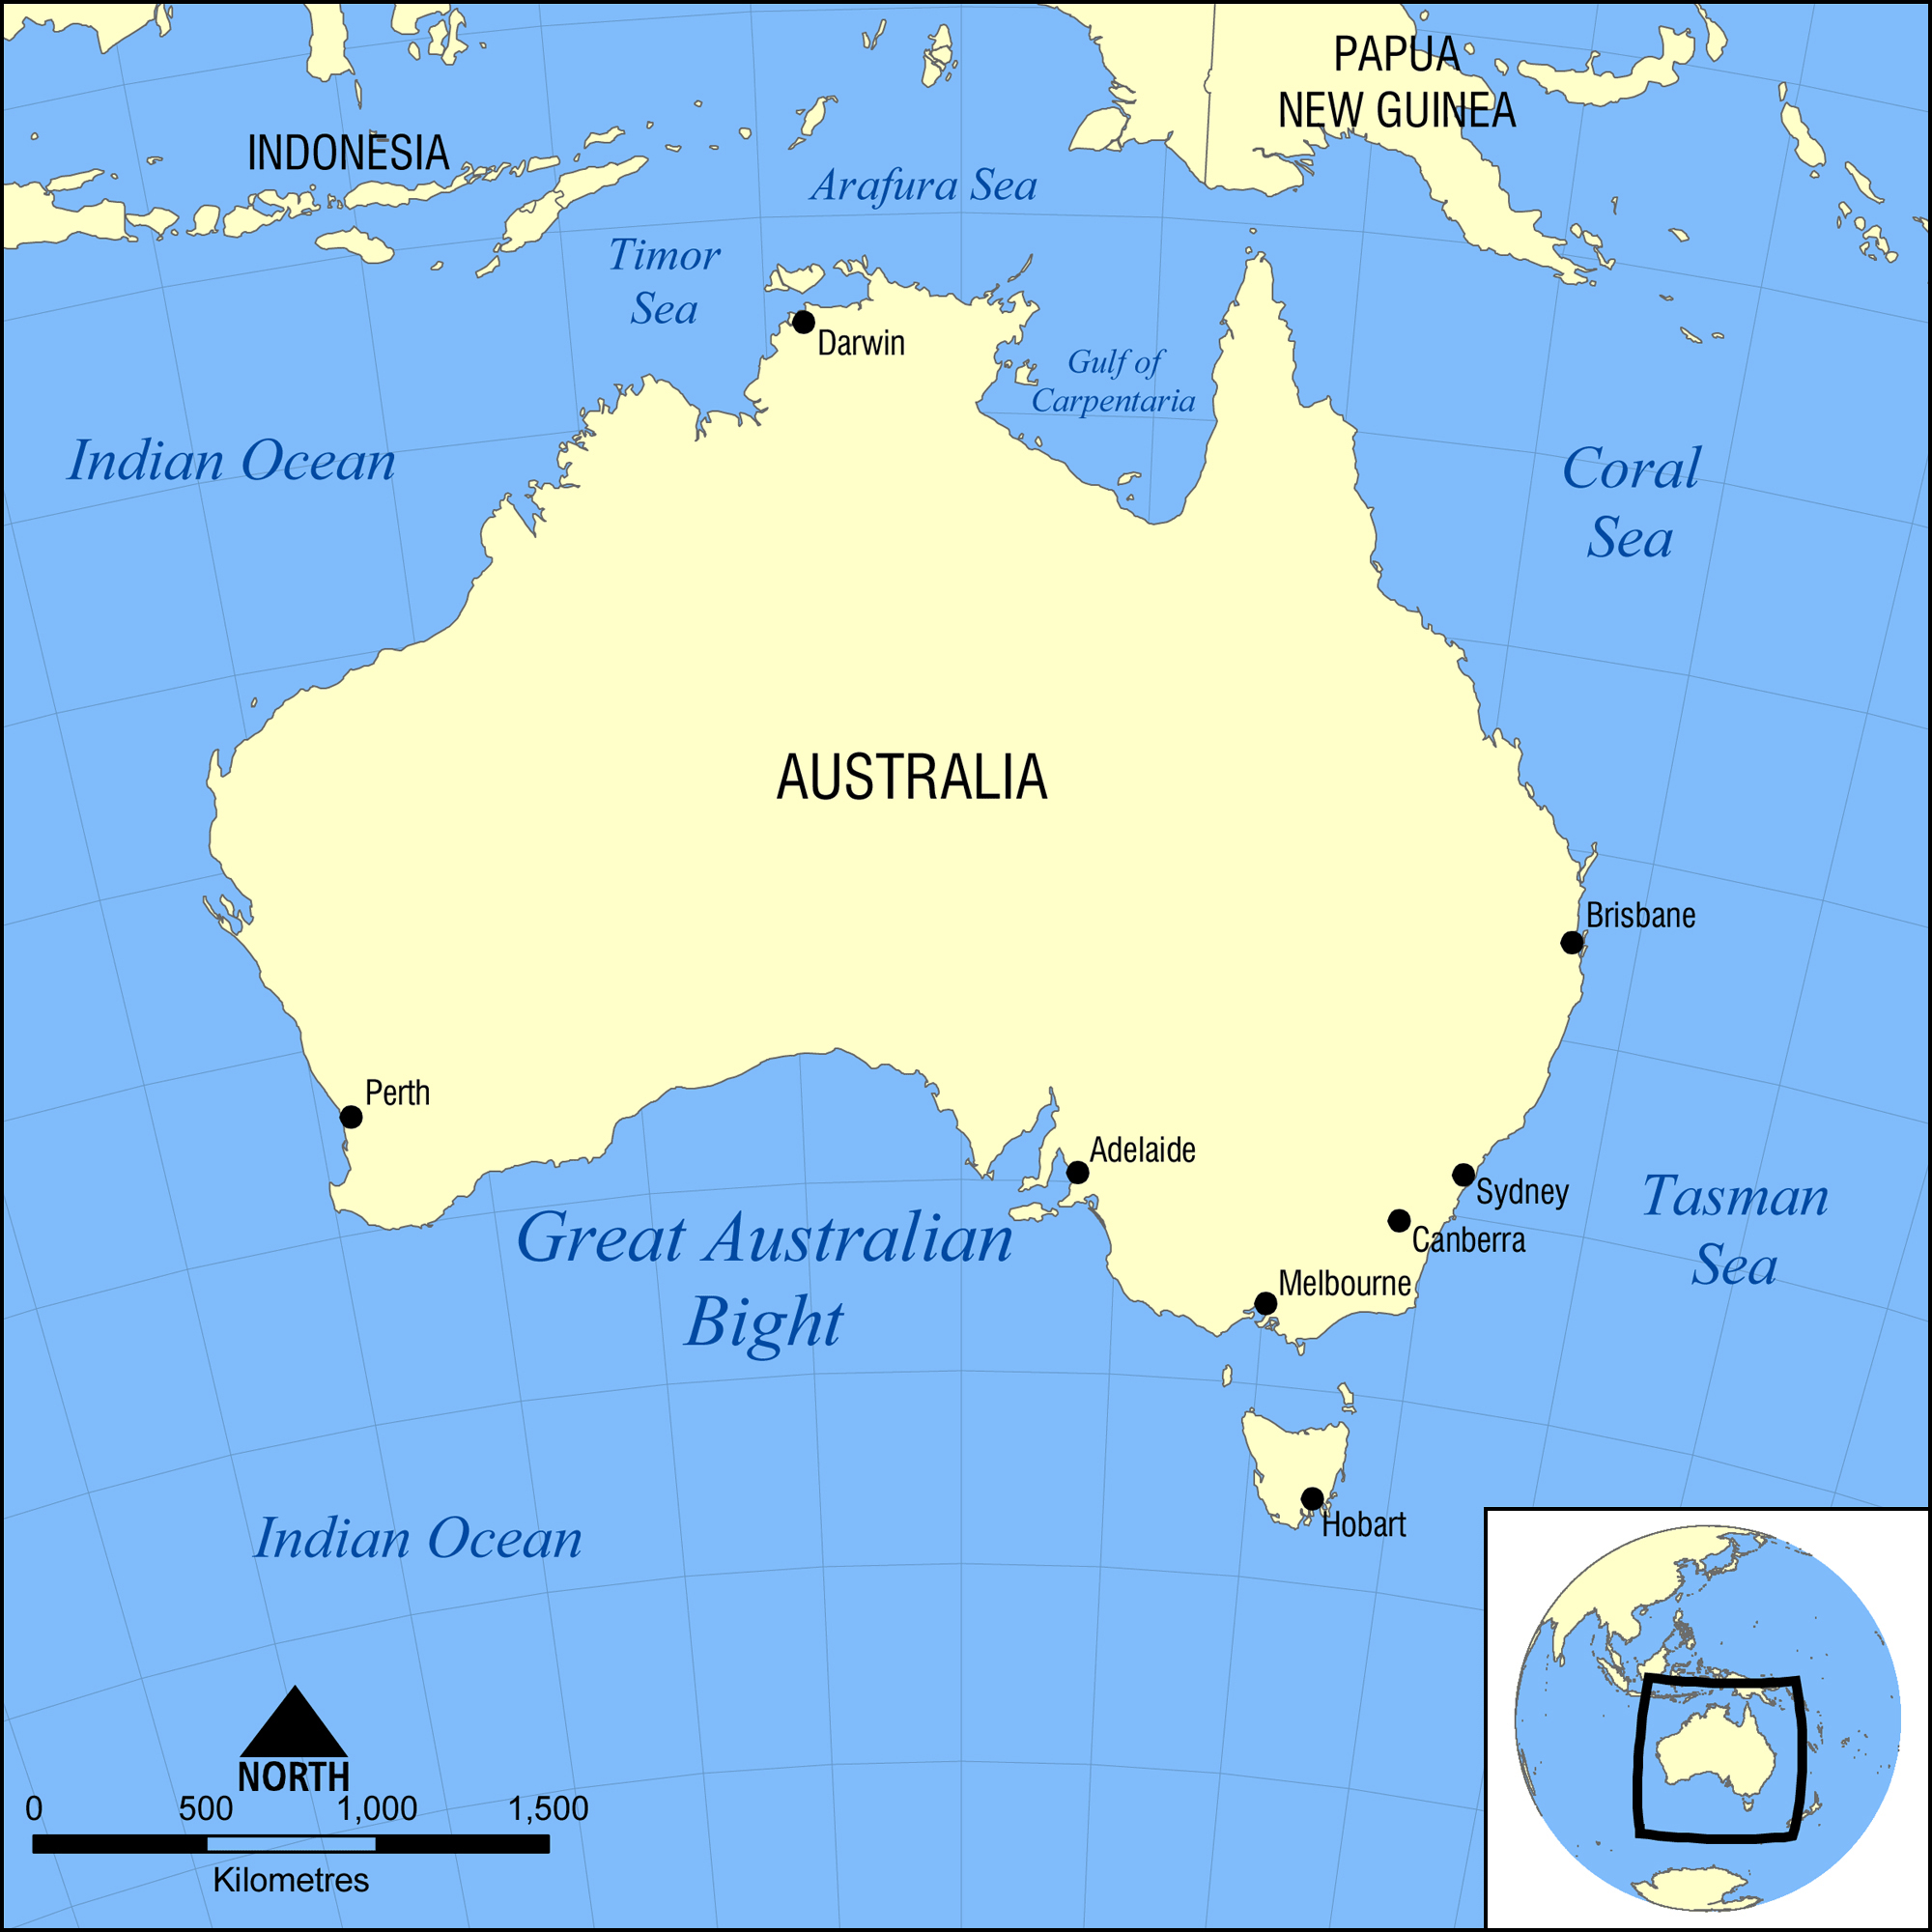 Australia Map Political.Full Political Map Of Australia Australia Full Political Map